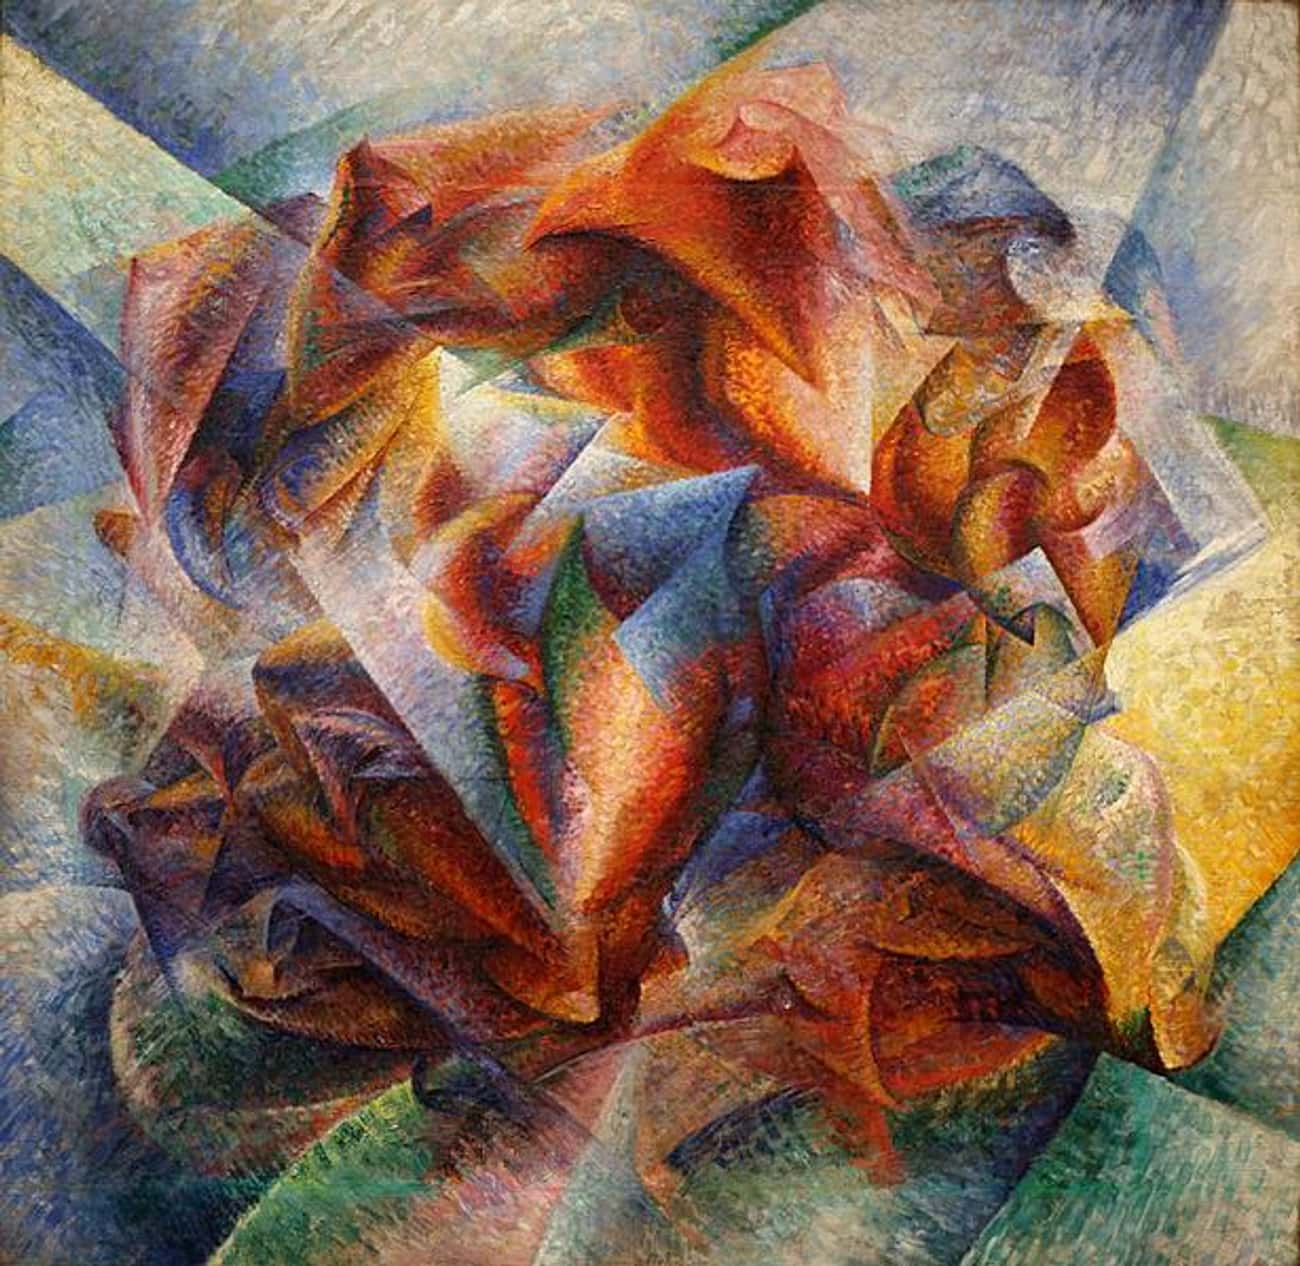 Dynamism of a Soccer Player is listed (or ranked) 4 on the list Famous Futurism Artwork